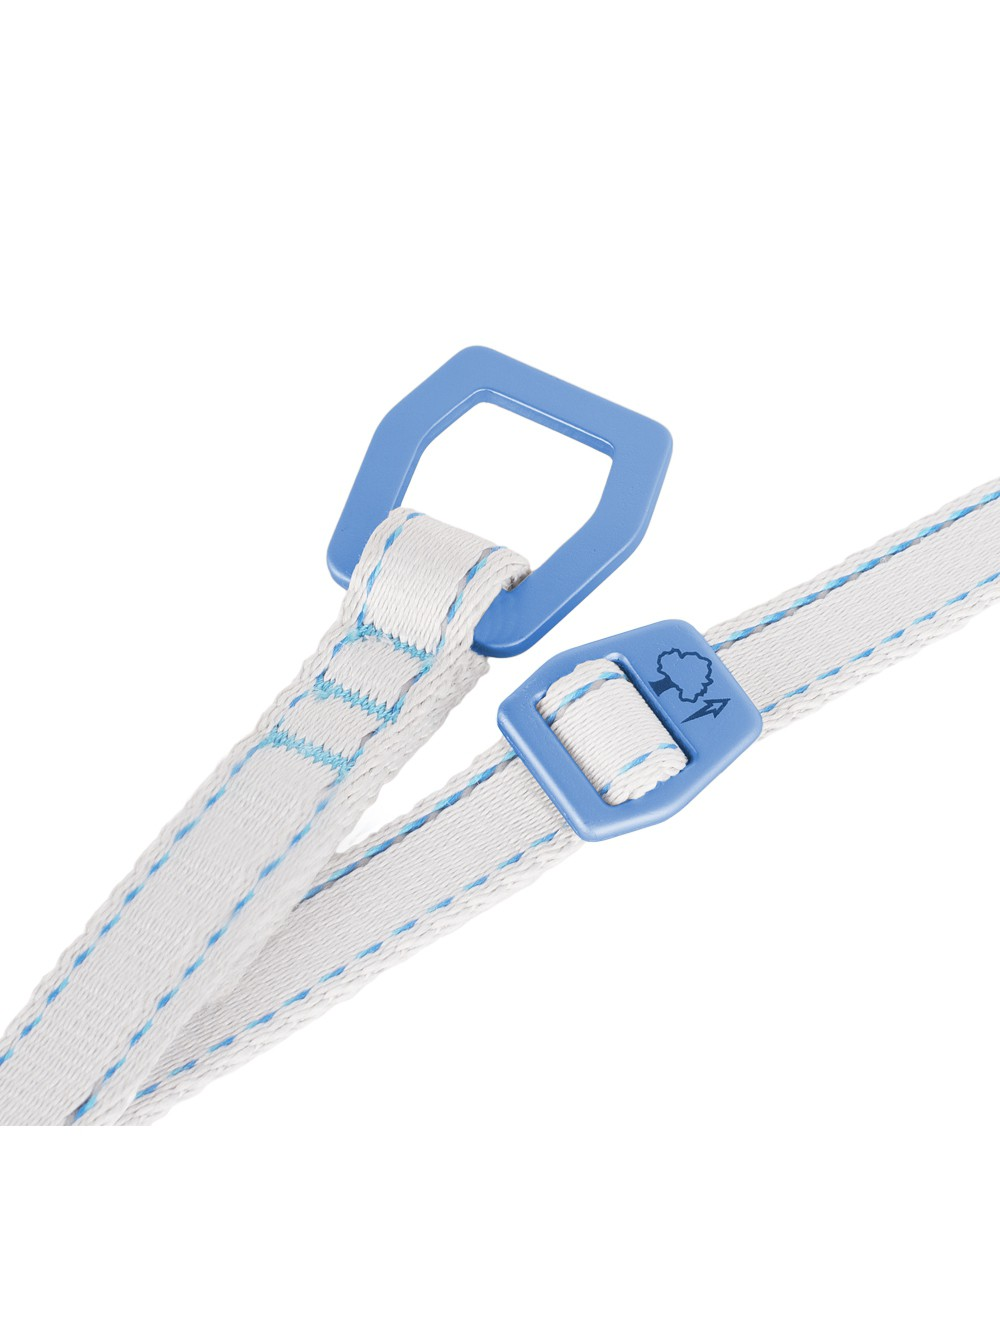 Sea to Summit  Ultralight Suspension Straps